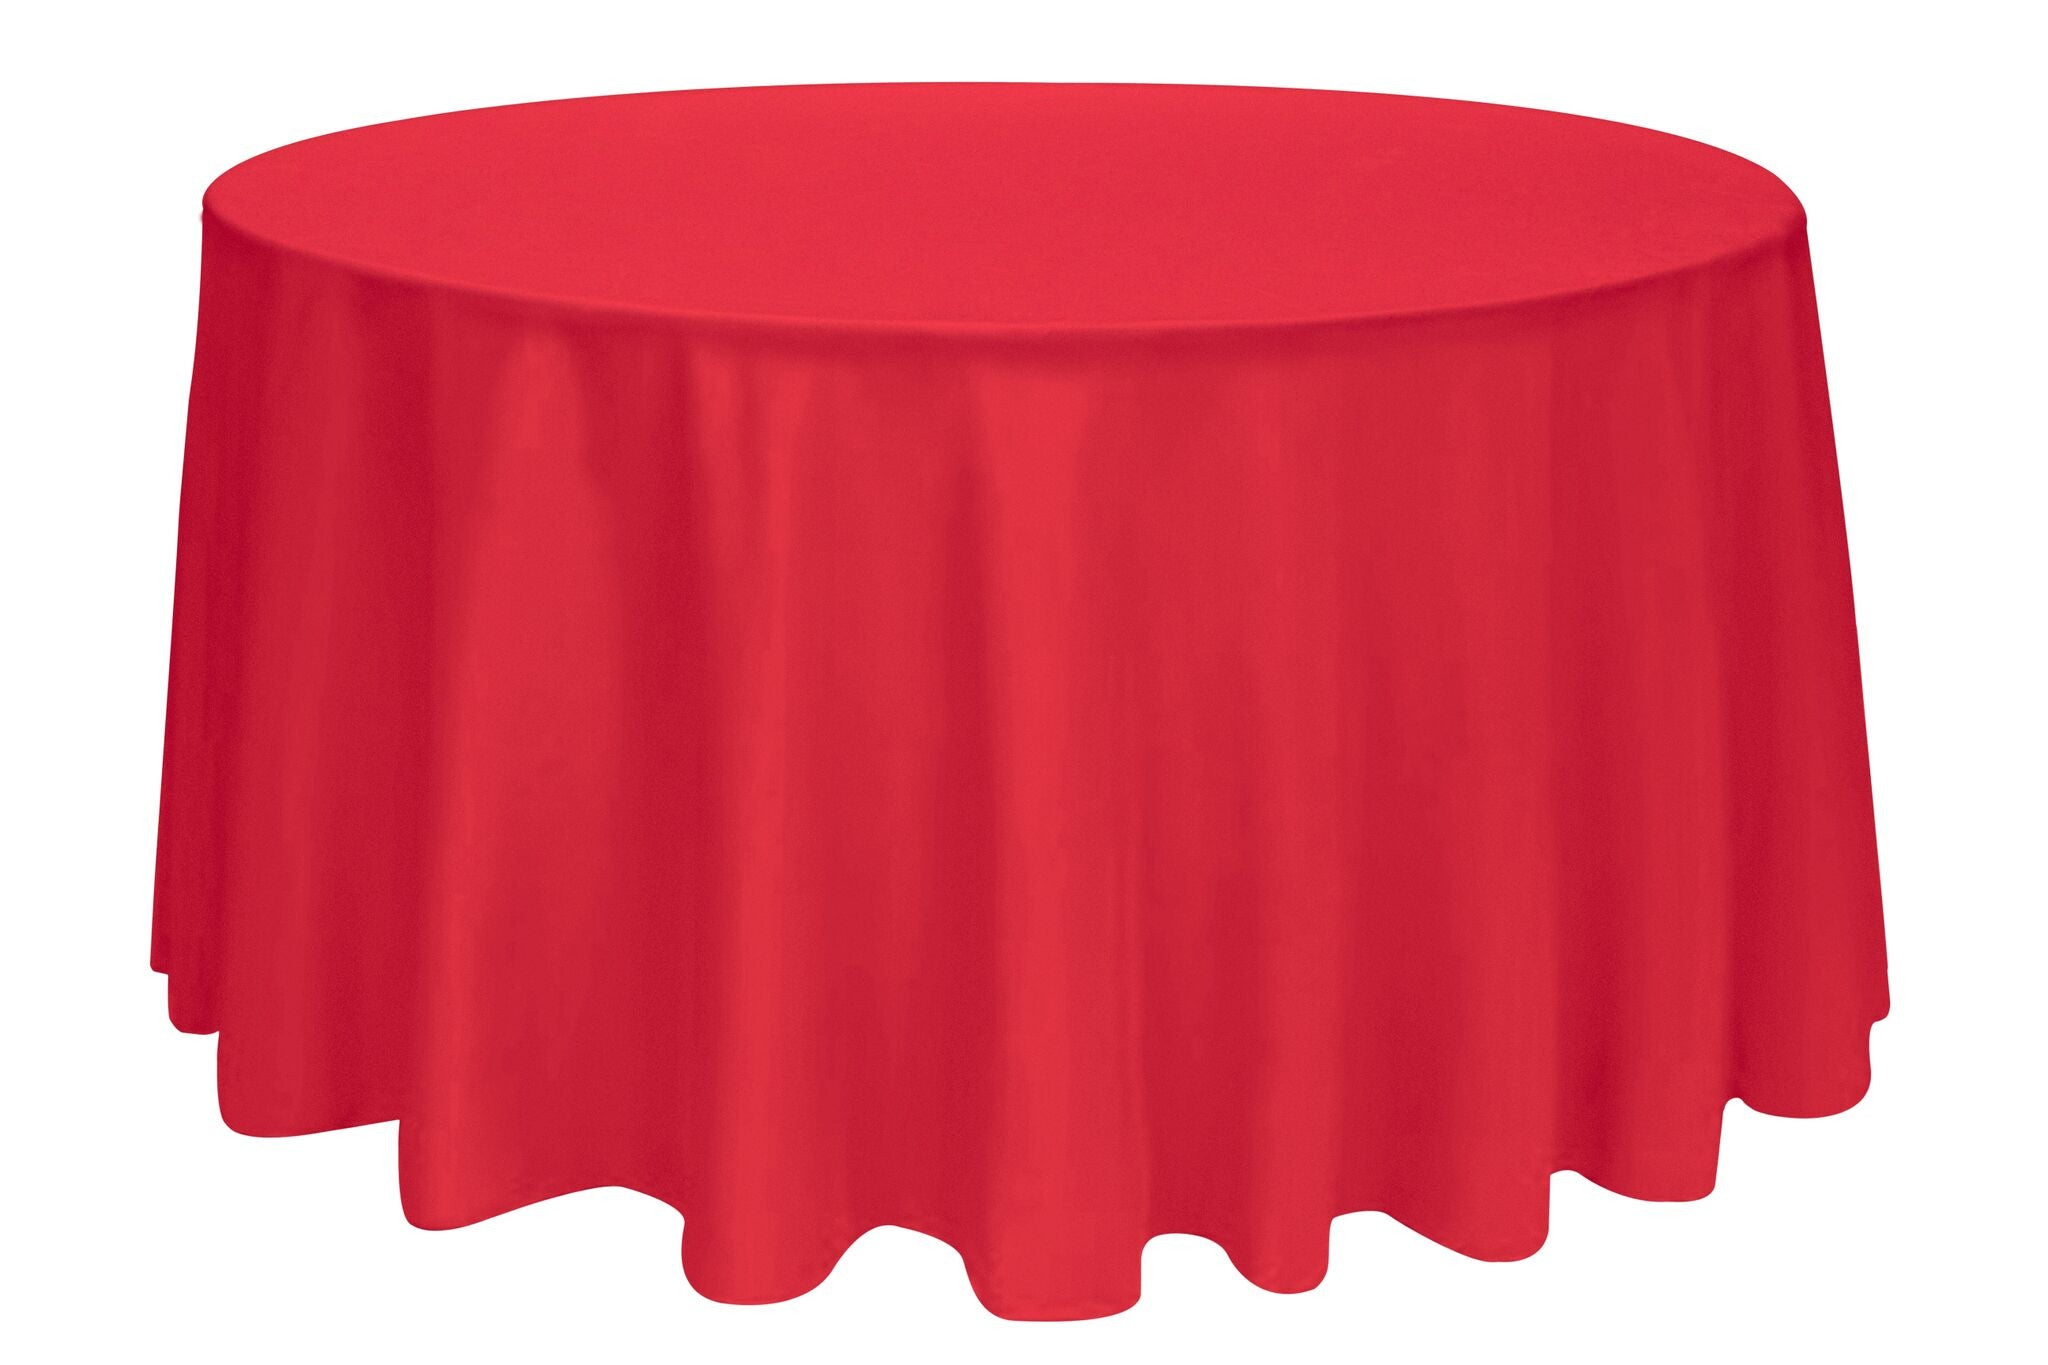 ... 120u0027u0027 Round Tablecloth ...